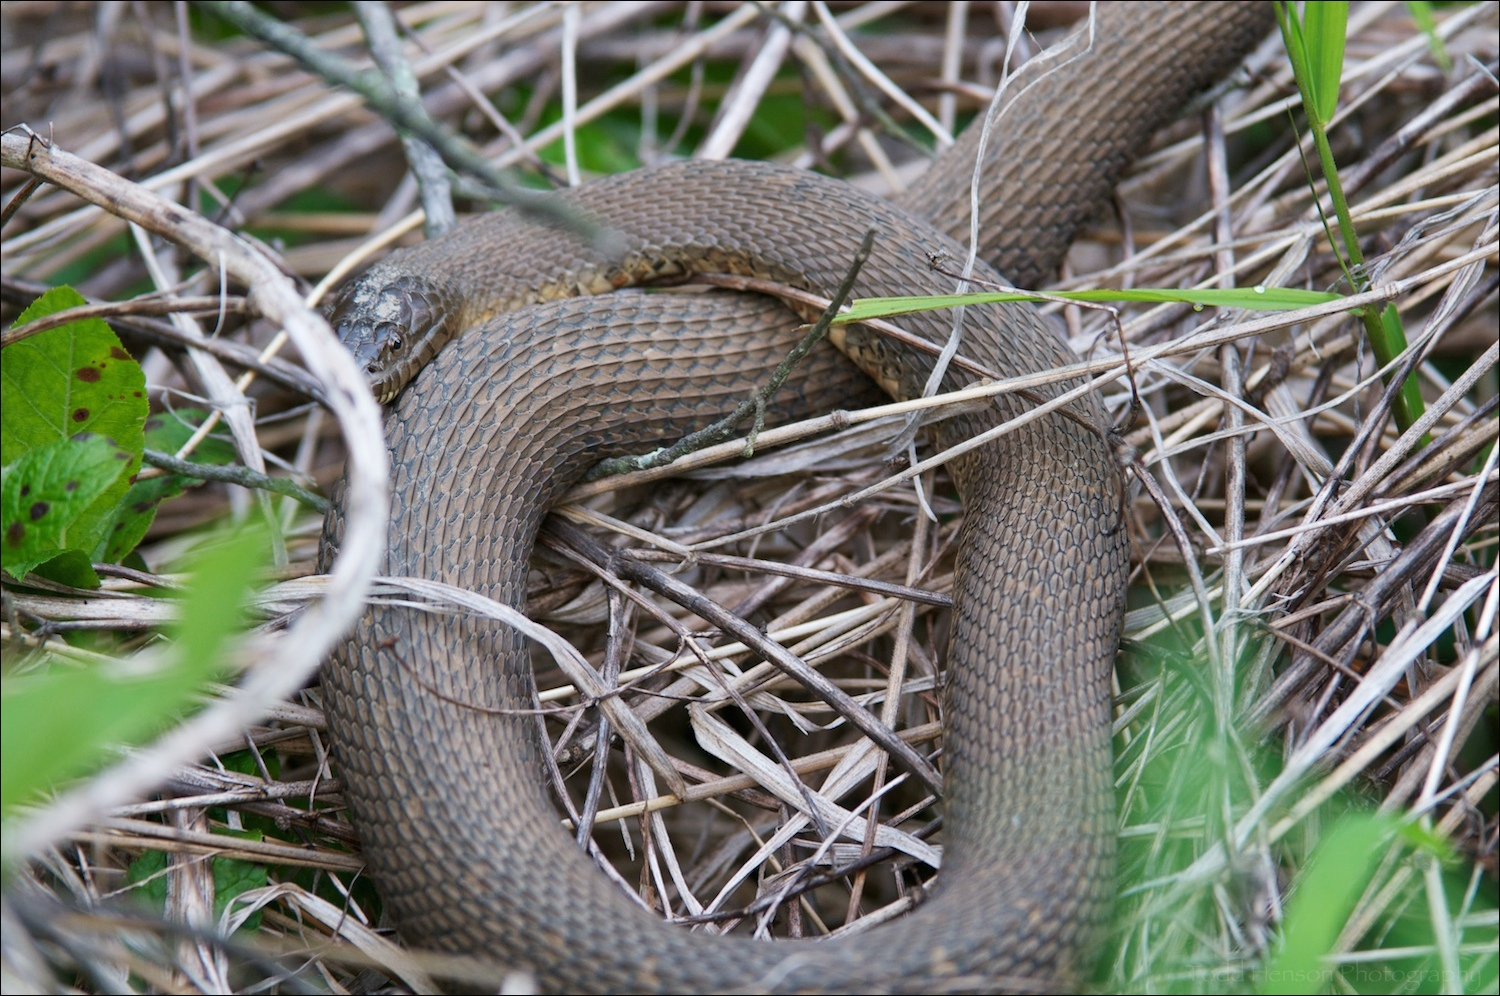 Partially obscured Northern Watersnake.